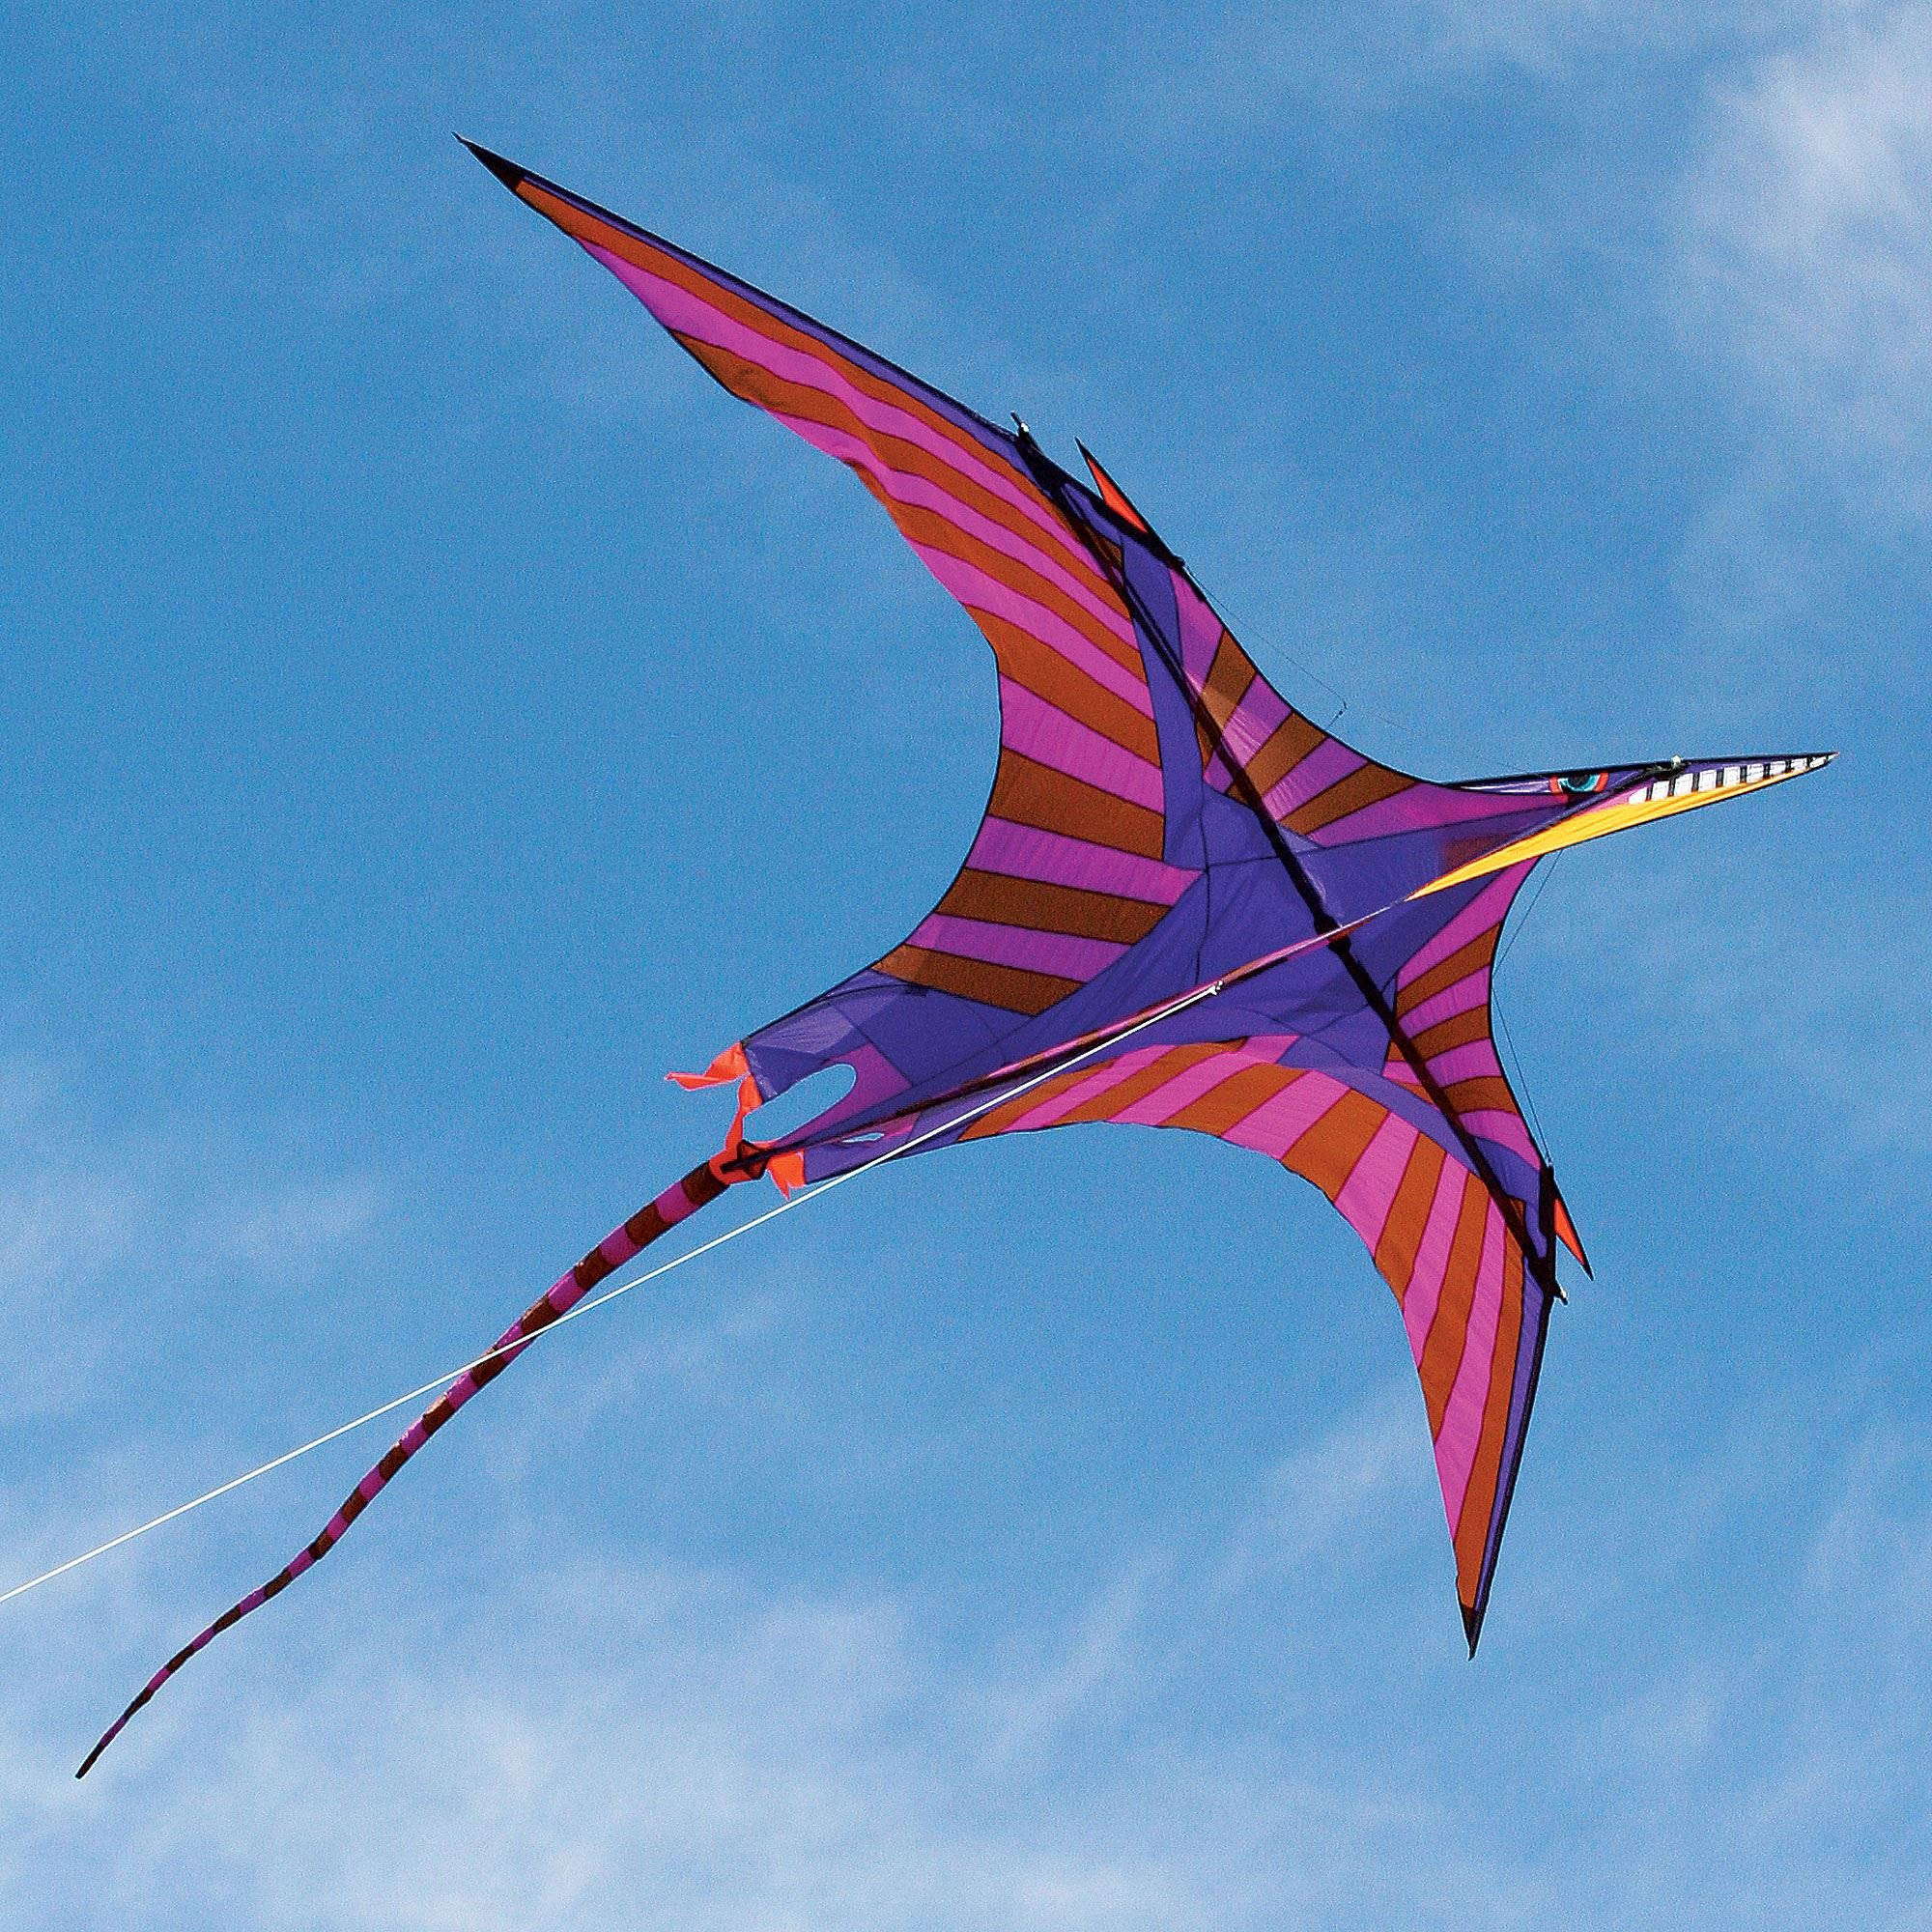 George Peters' Pterosaur Kite by Into The Wind